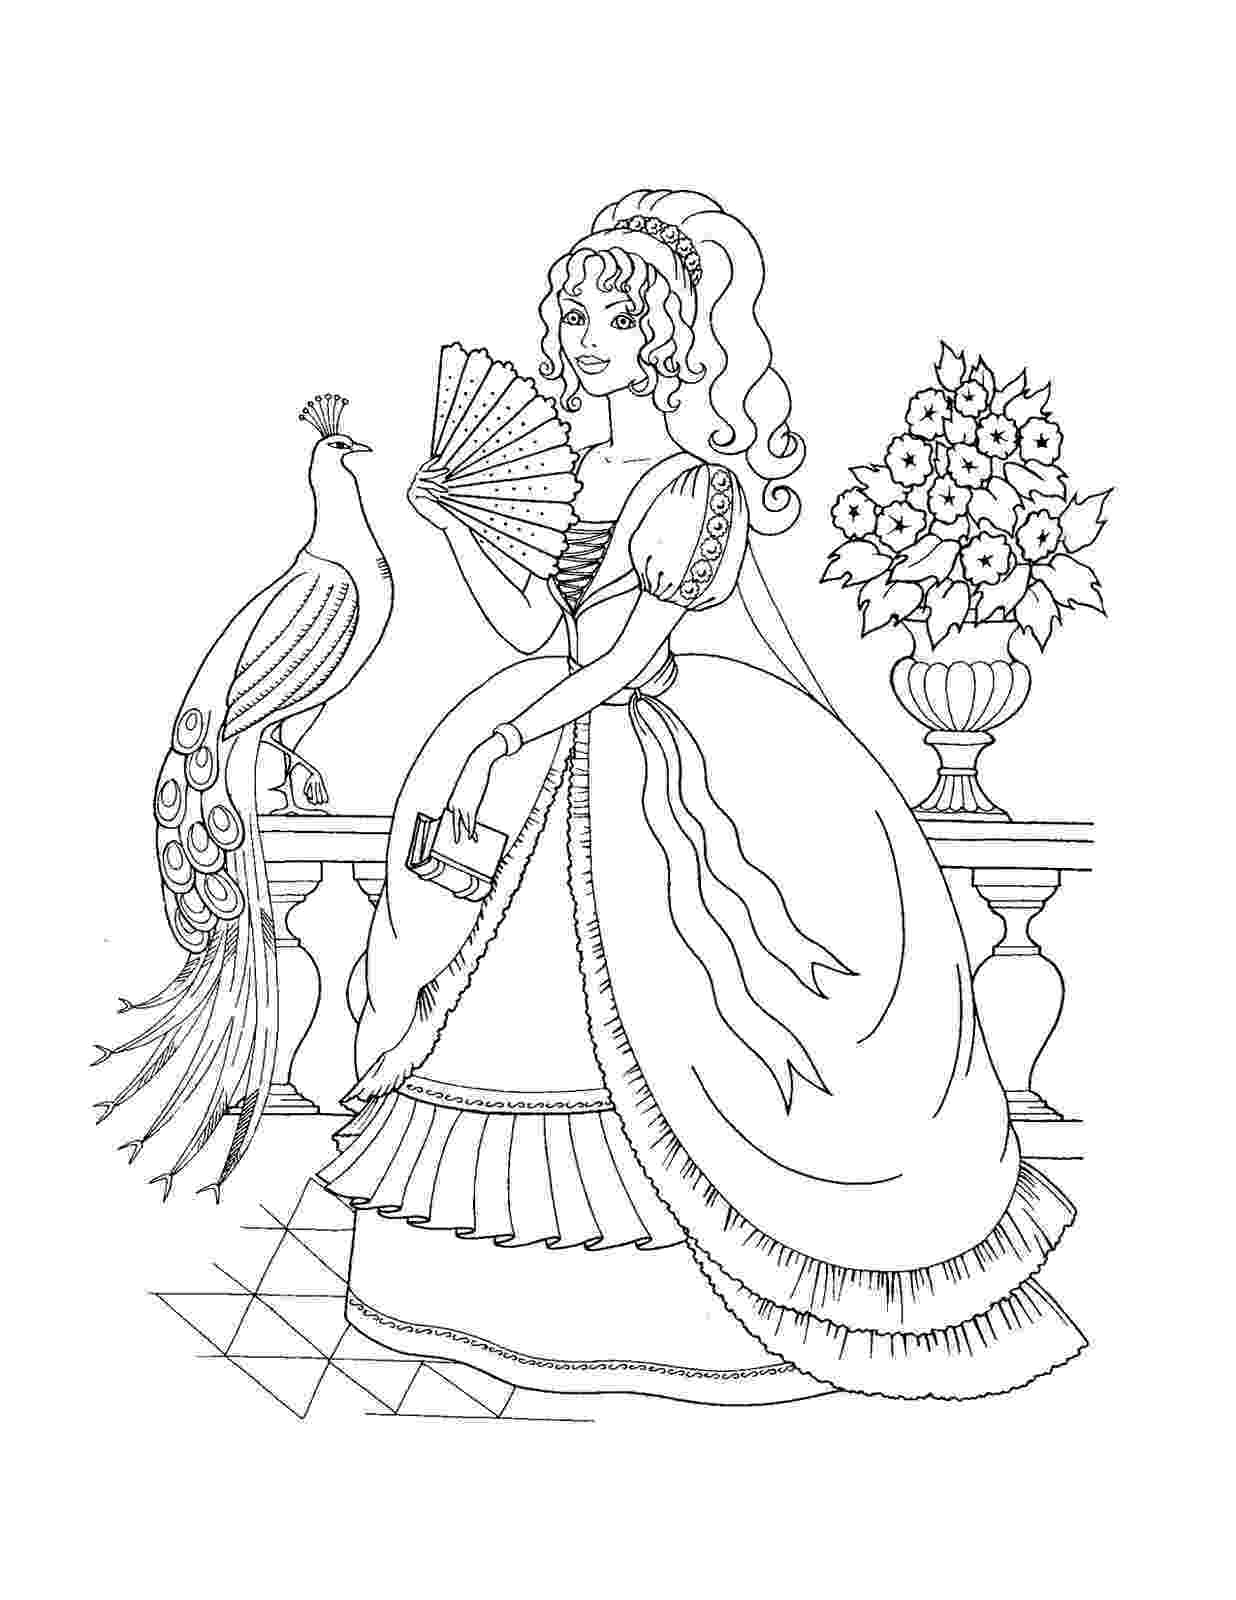 coloring pages princesses printable coloring pages disney princess coloring pages princesses pages coloring